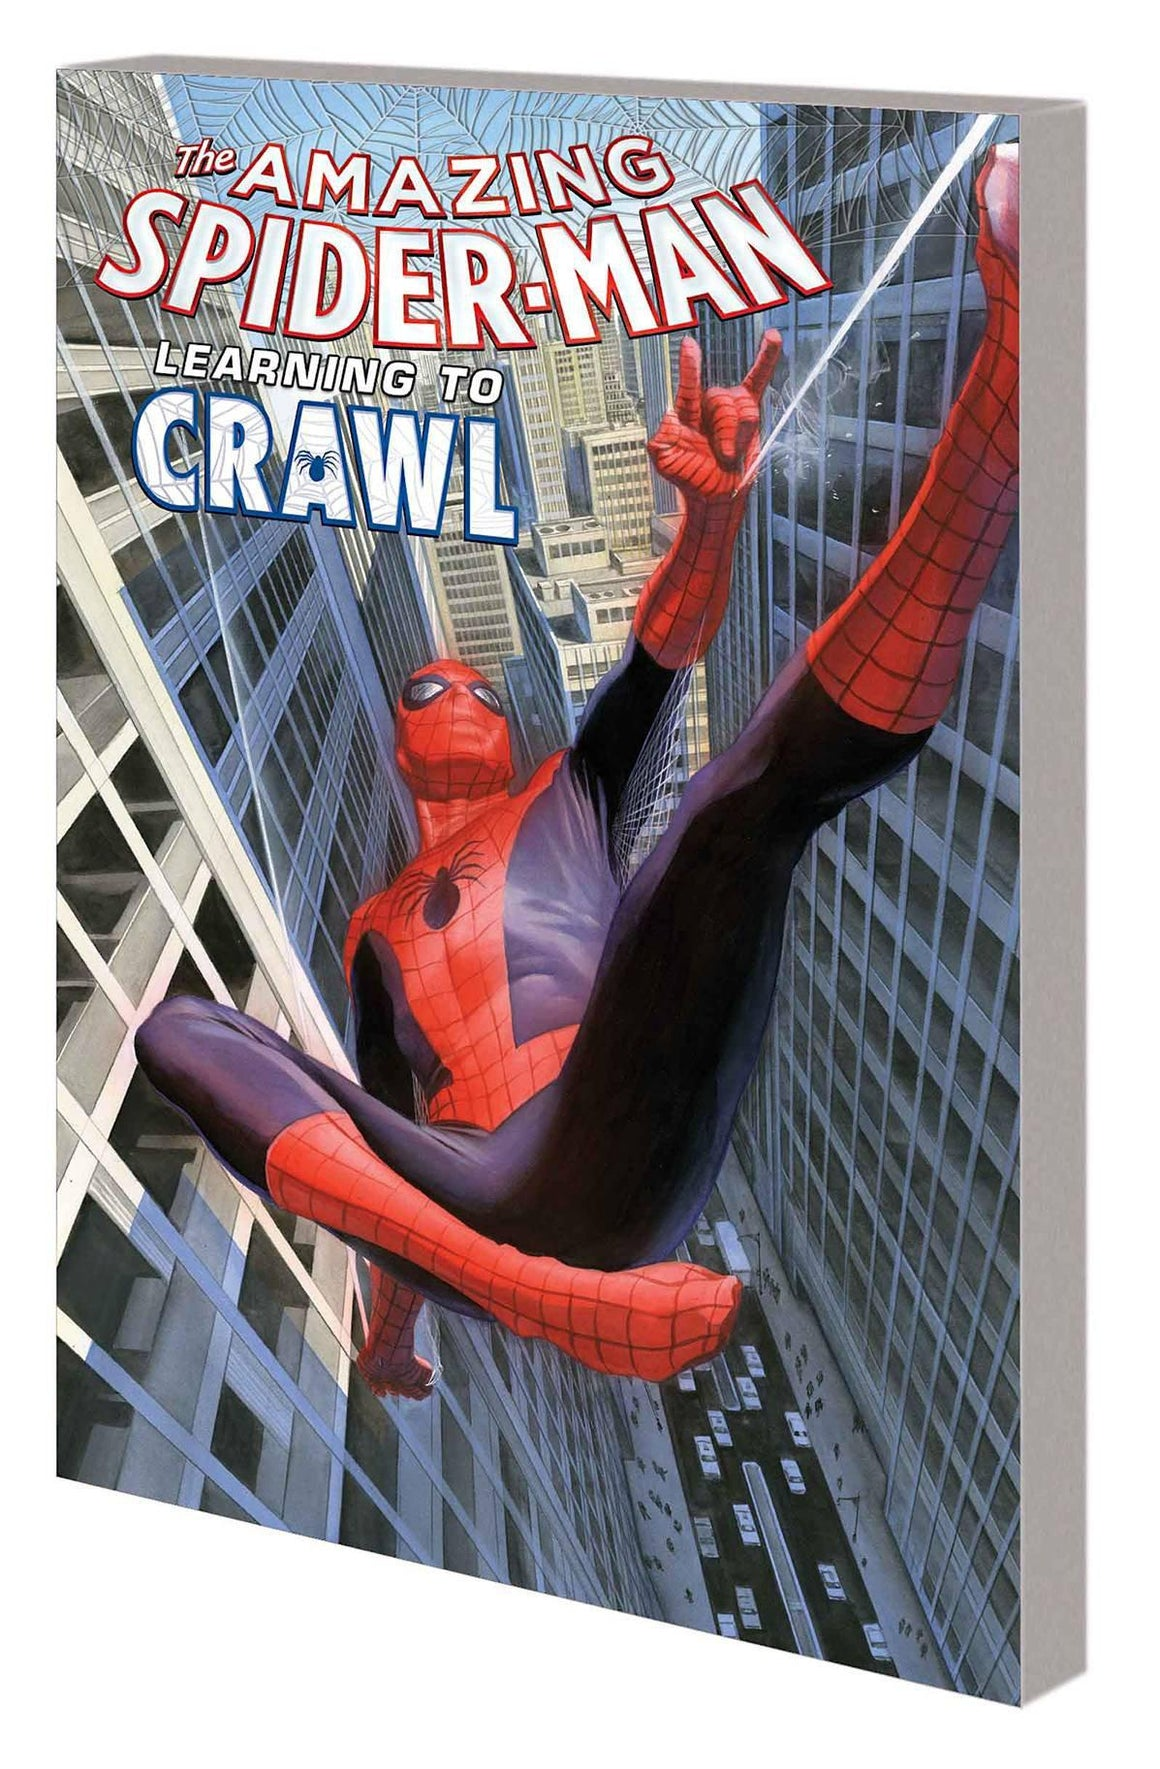 AMAZING SPIDER-MAN TP 01.1 LEARNING TO CRAWL